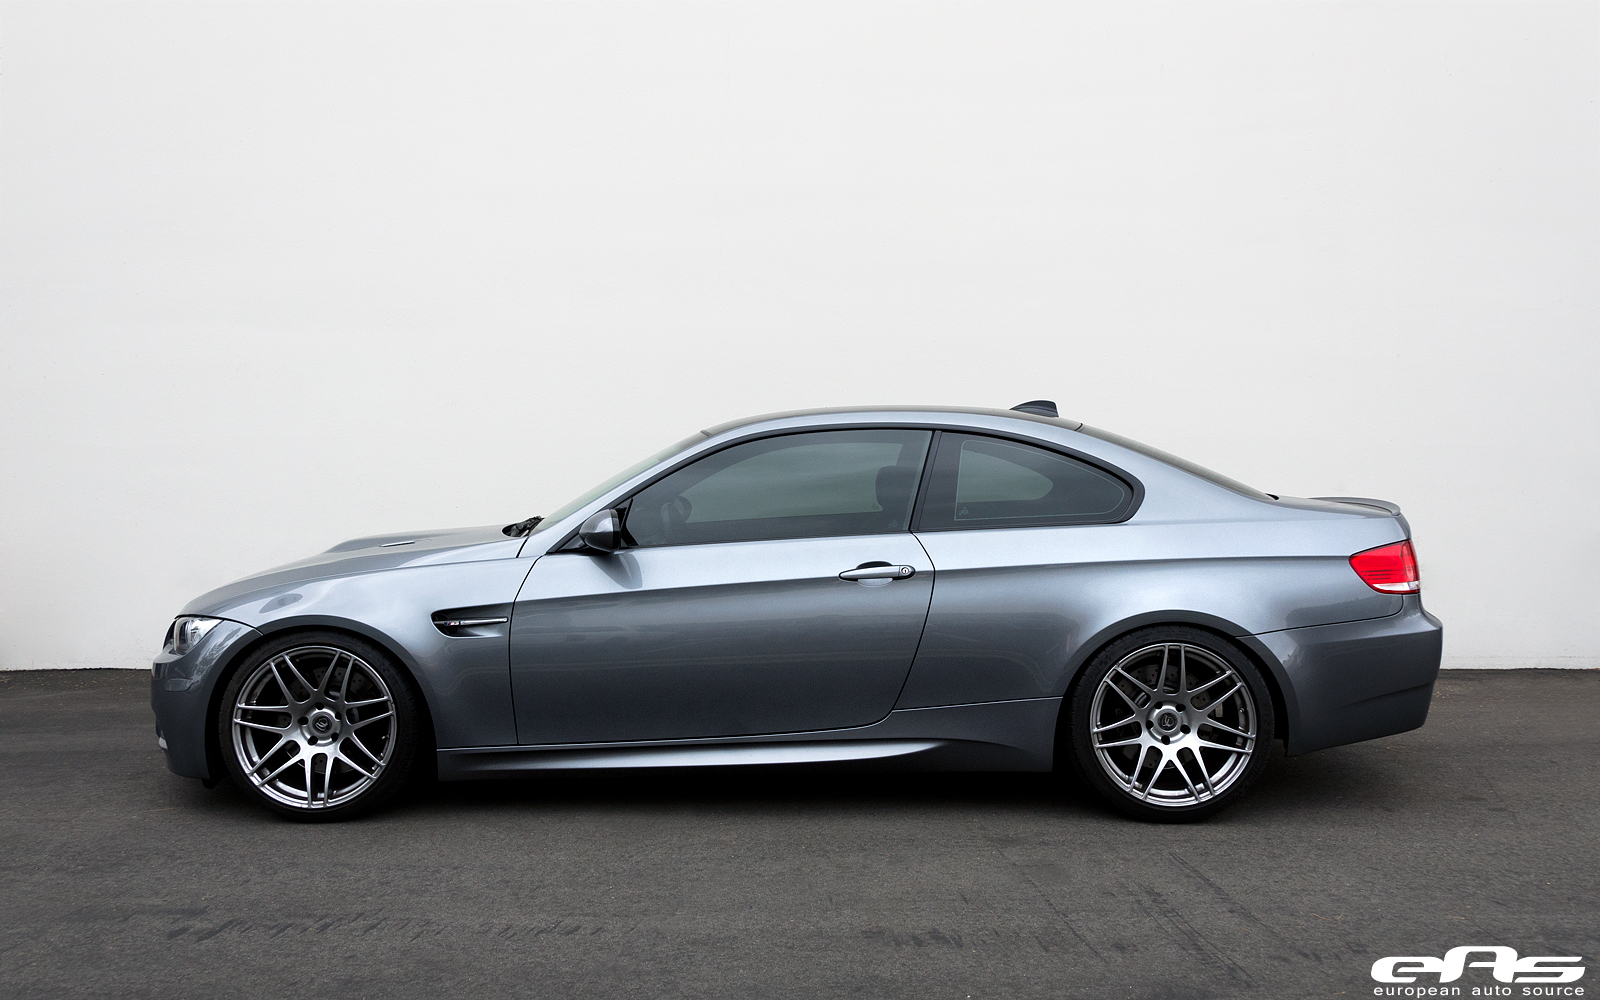 space grey bmw e92 m3 climbs on kw suspension at eas. Black Bedroom Furniture Sets. Home Design Ideas